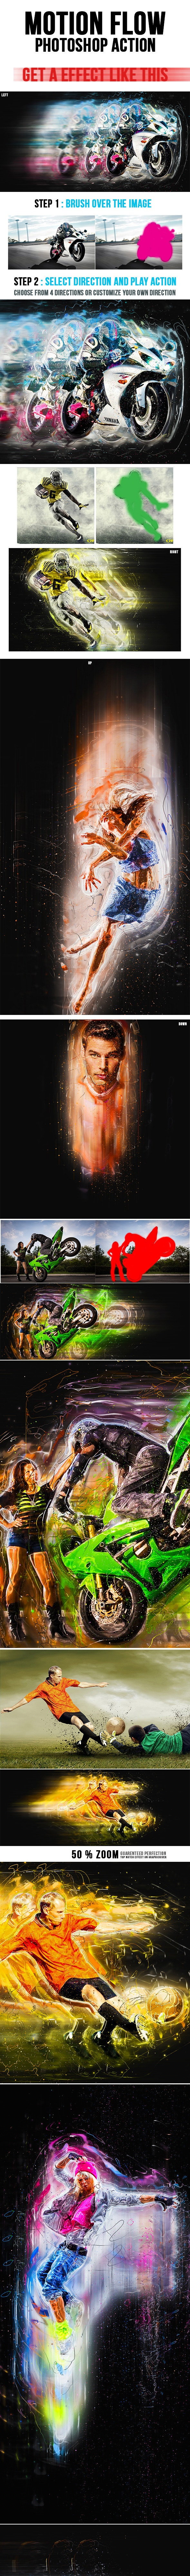 Motionflow Photoshop Action - Photo Effects Actions